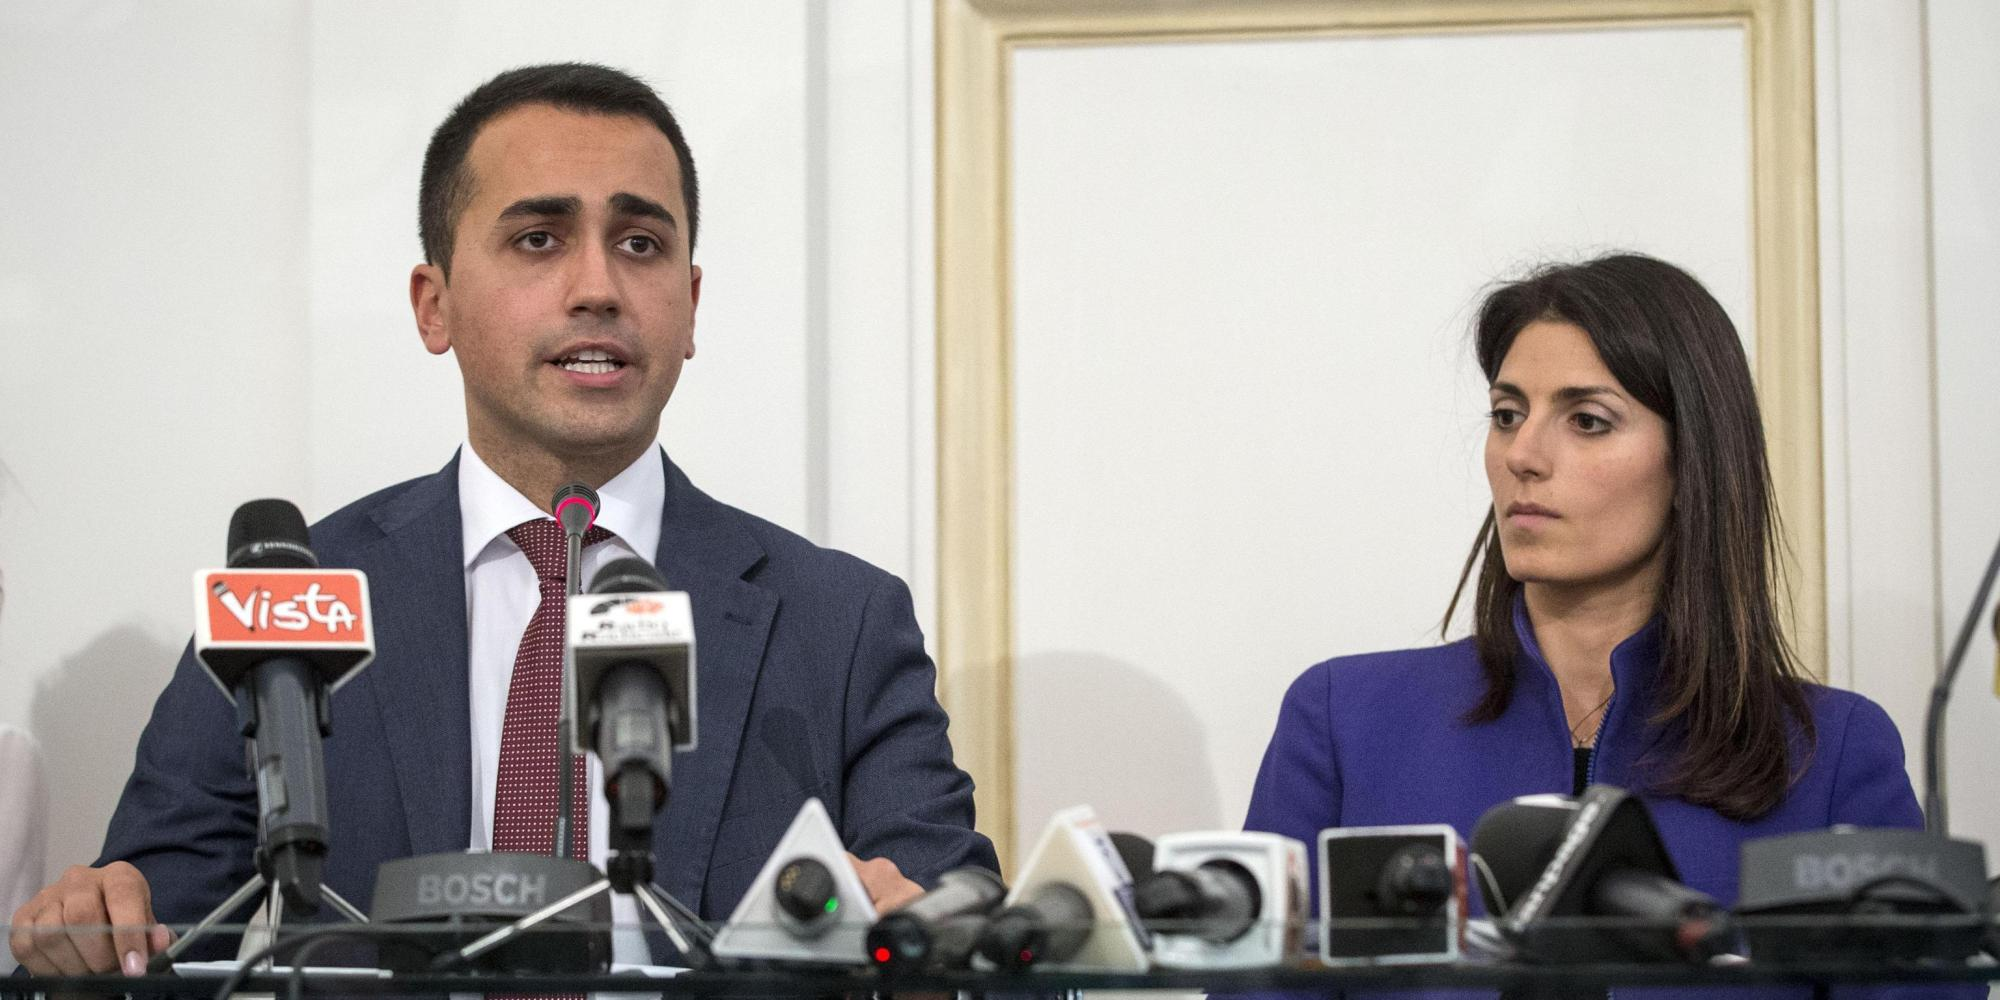 Luigi Di Maio con Virginia Raggi in conferenza stampa.